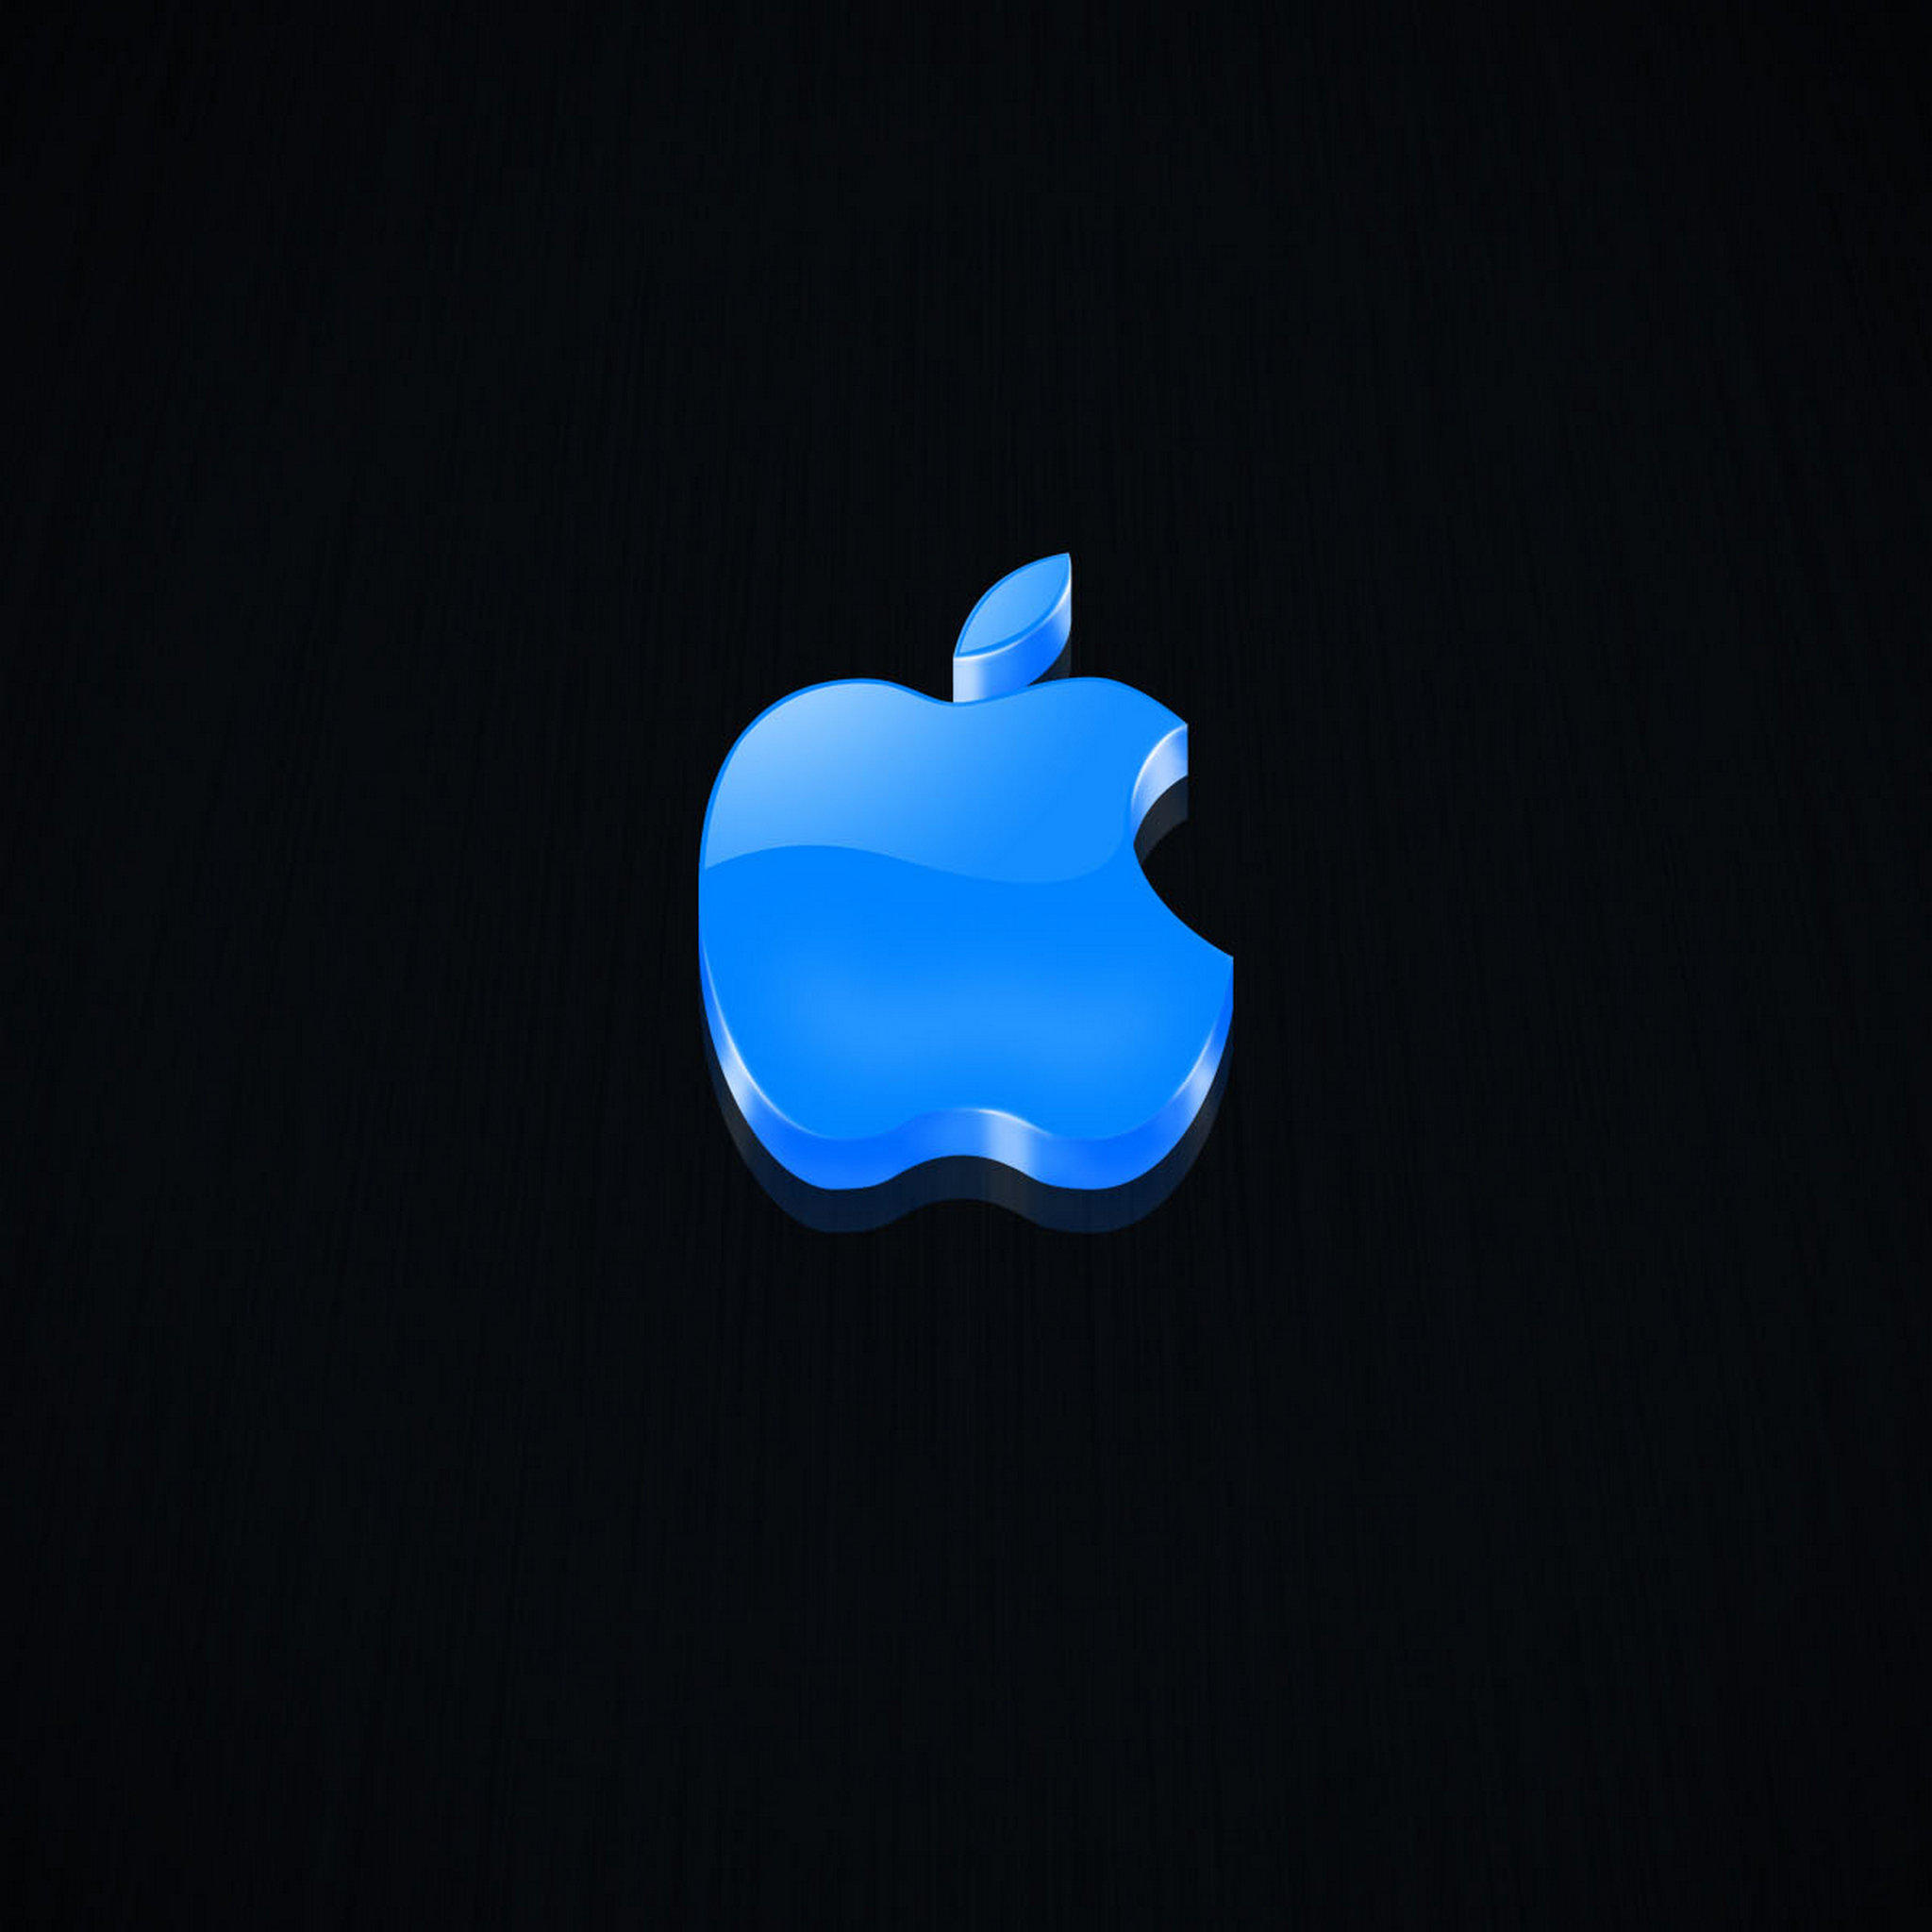 iPad Wallpapers Apple LOGO 025   Apple New iPad iPad 3 iPad 4 2048x2048